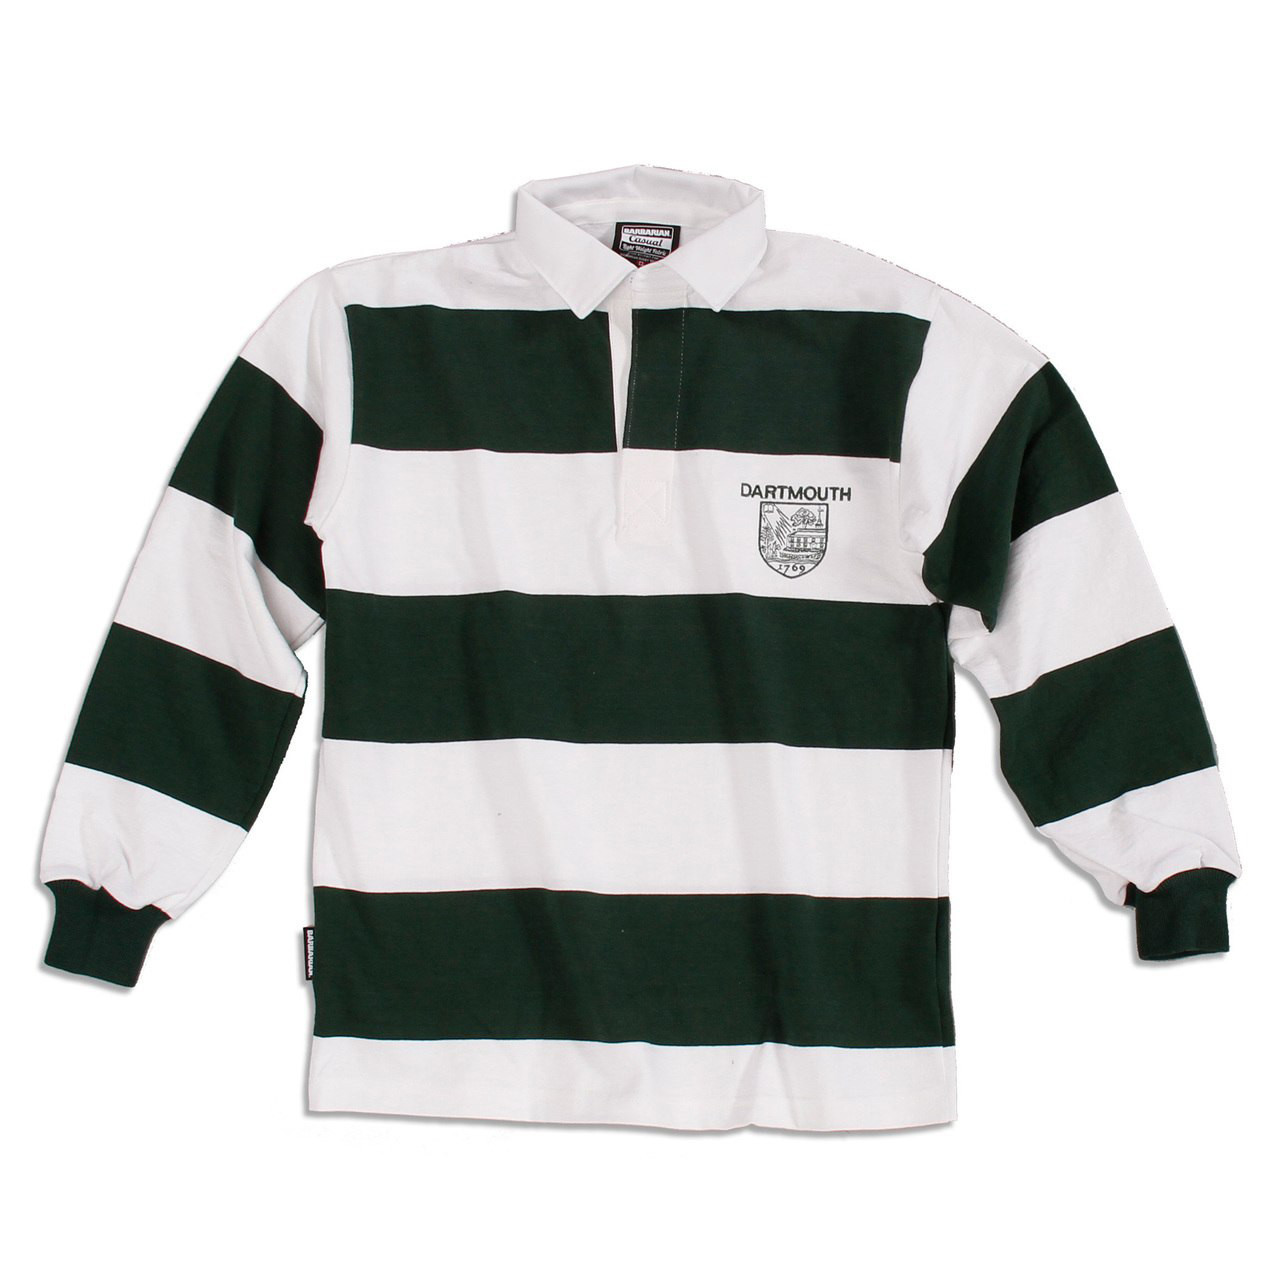 2608c8957 Green and white striped long sleeve rugby jersey with 'Dartmouth' and  Dartmouth shield on